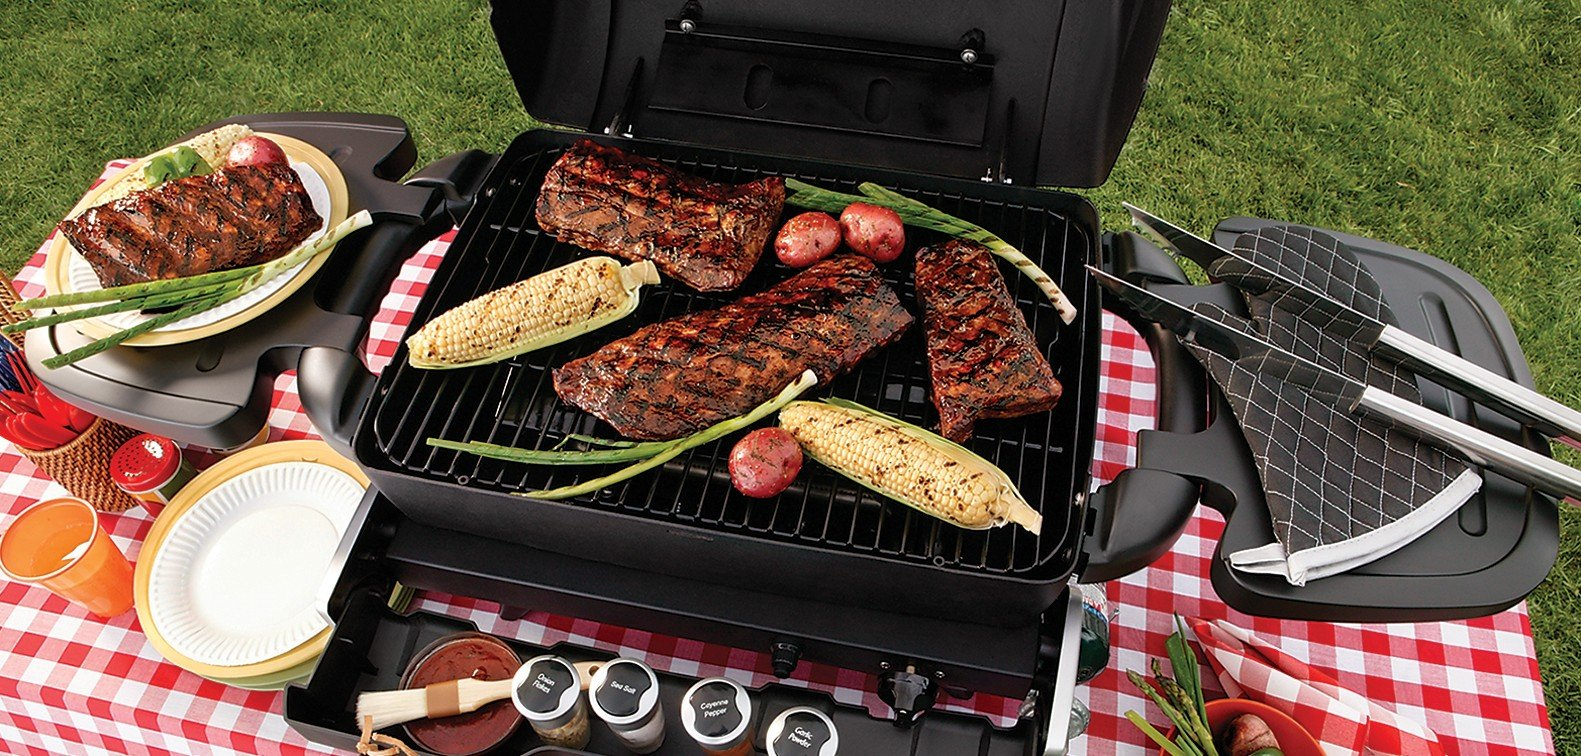 The 9 Best Small Gas, Charcoal and Propane Grills